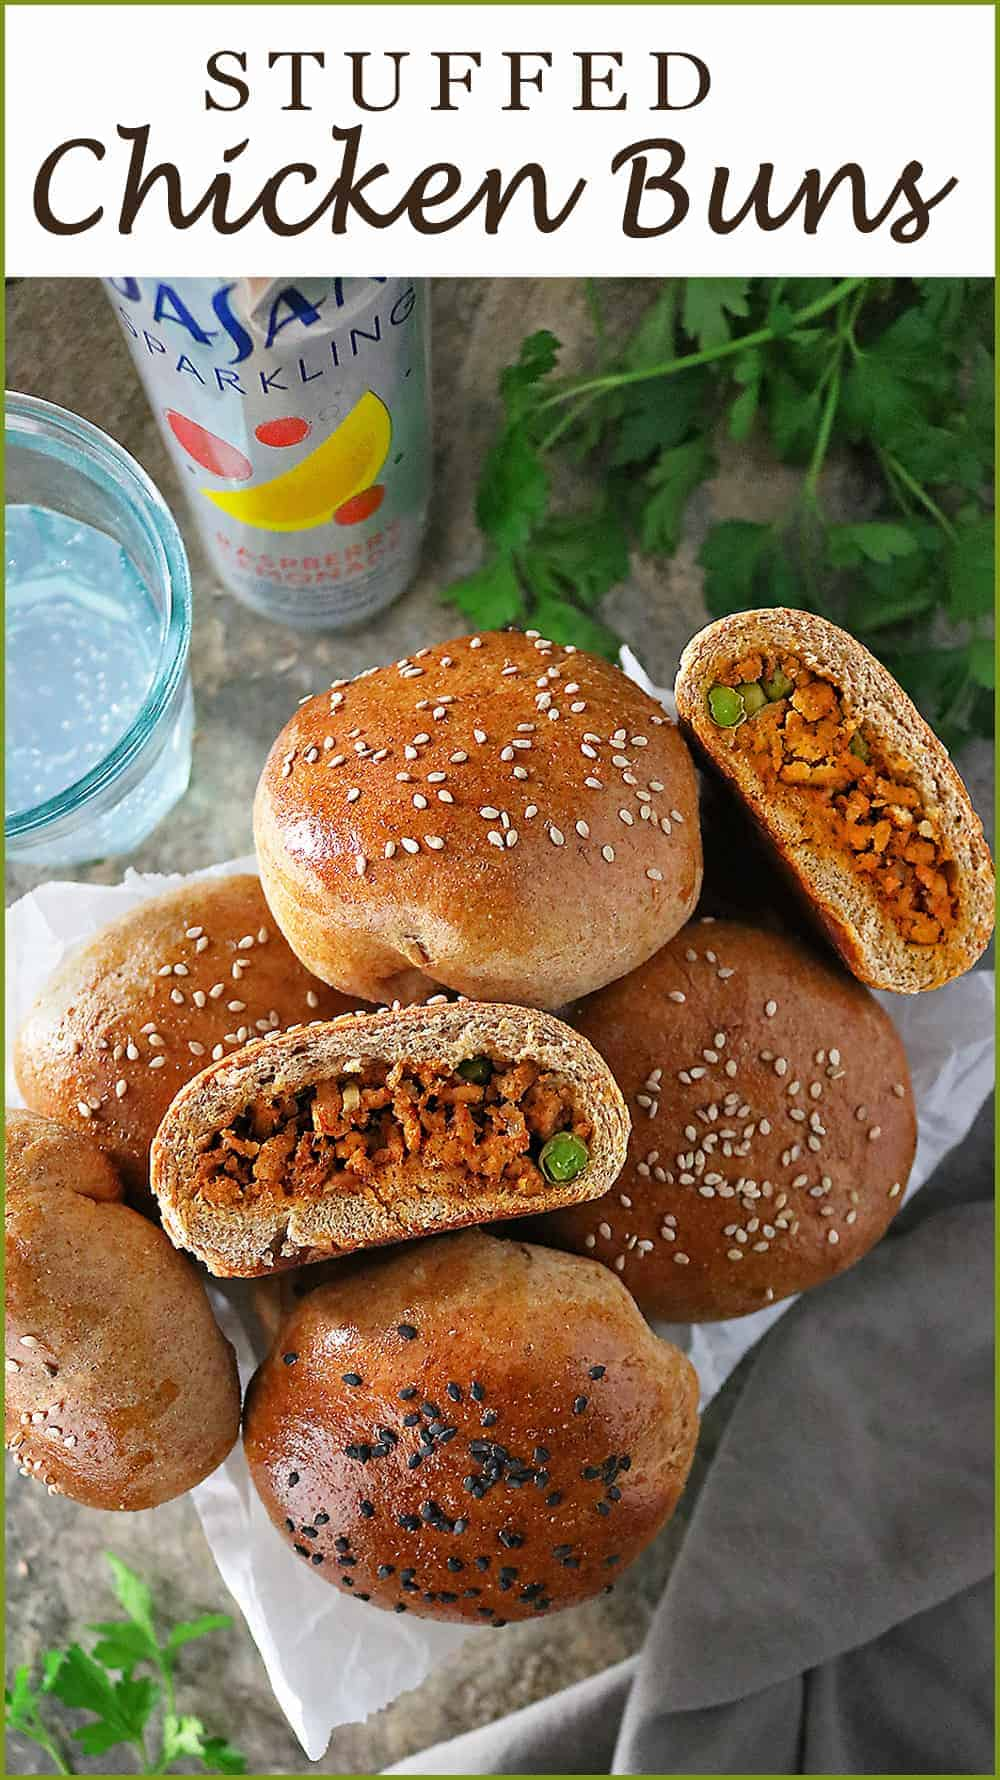 These portable Spiced Chicken Stuffed Buns make snacking delightful! Filled with aromatic chicken that's sauteed with ginger, garlic, and a plethora of spices, these are wonderful to take along on hikes or road trips! #DASANISparkling #FlavorContest #CollectiveBias